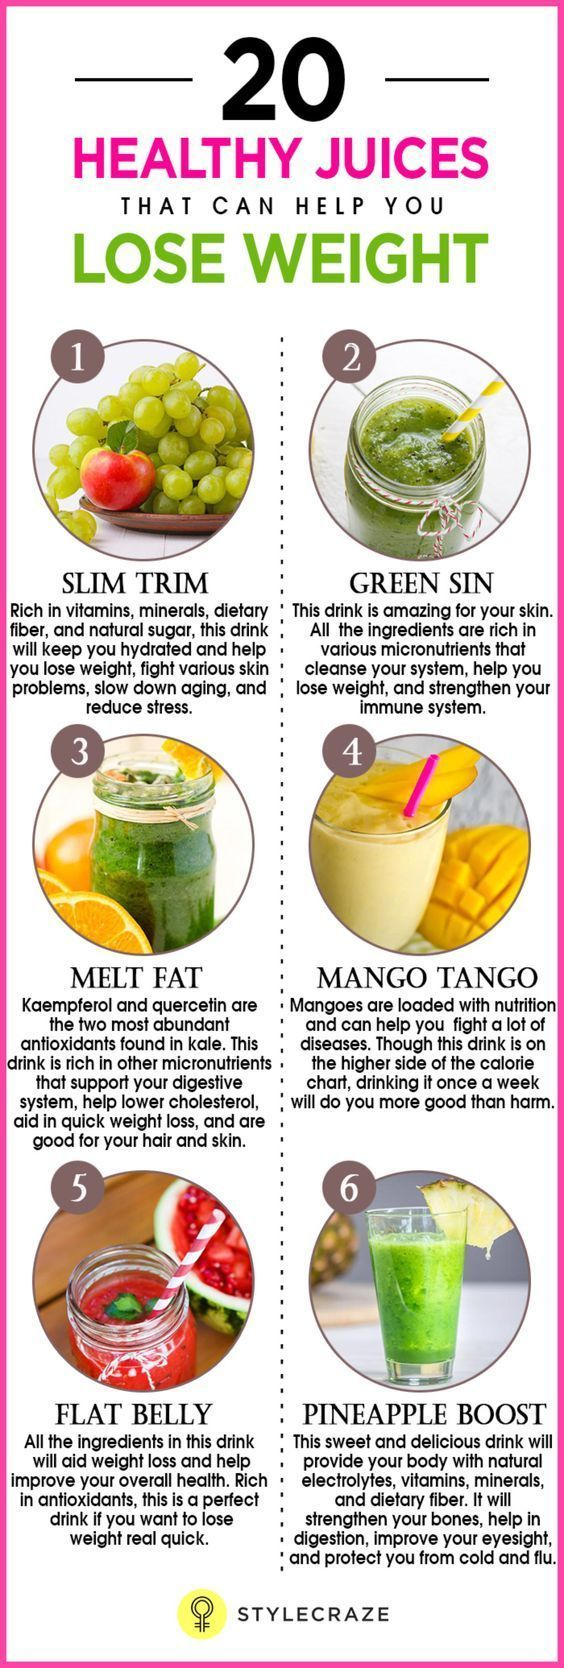 #easyweightloss <= | perfect way to lose weight#weightlossjourney #fitness #healthy #diet